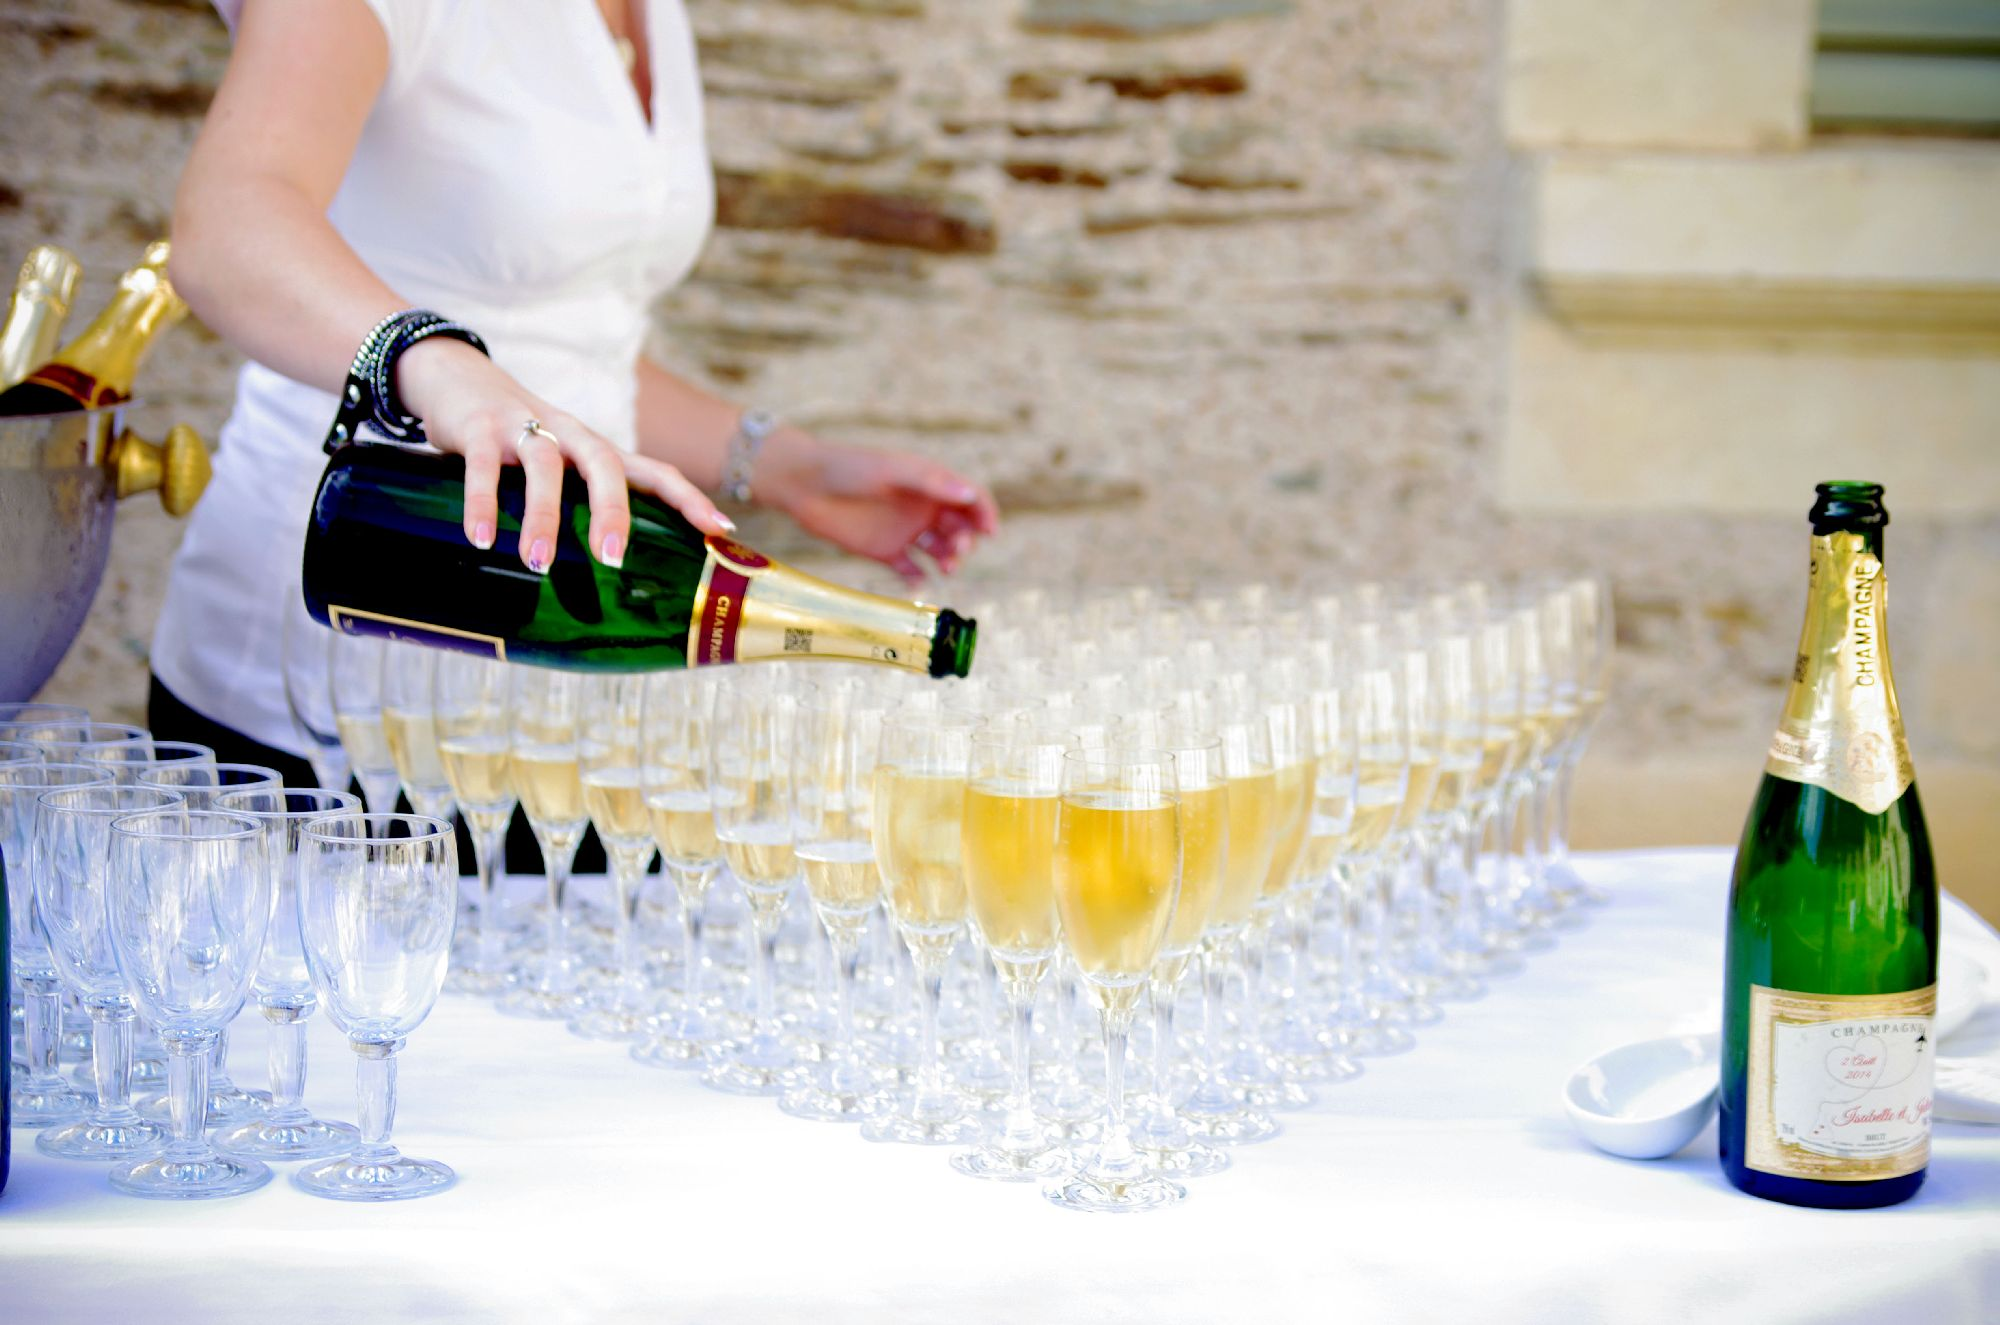 280/Chateau_Perriere/Mariages/mariage_champagne.jpg